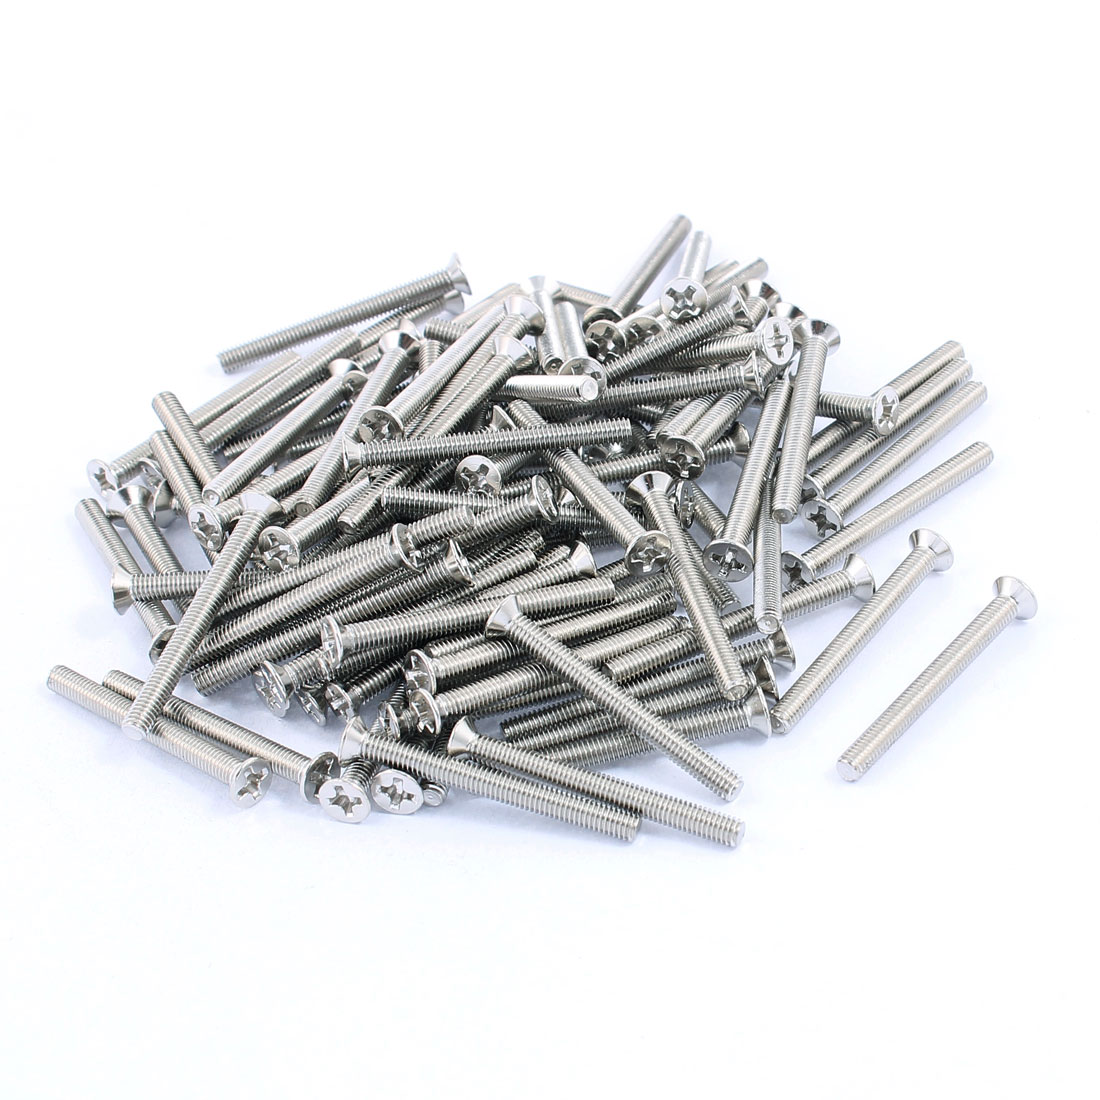 M3x30mm Stainless Steel Phillips Flat Countersunk Head Machine Screws Bolts 100pcs